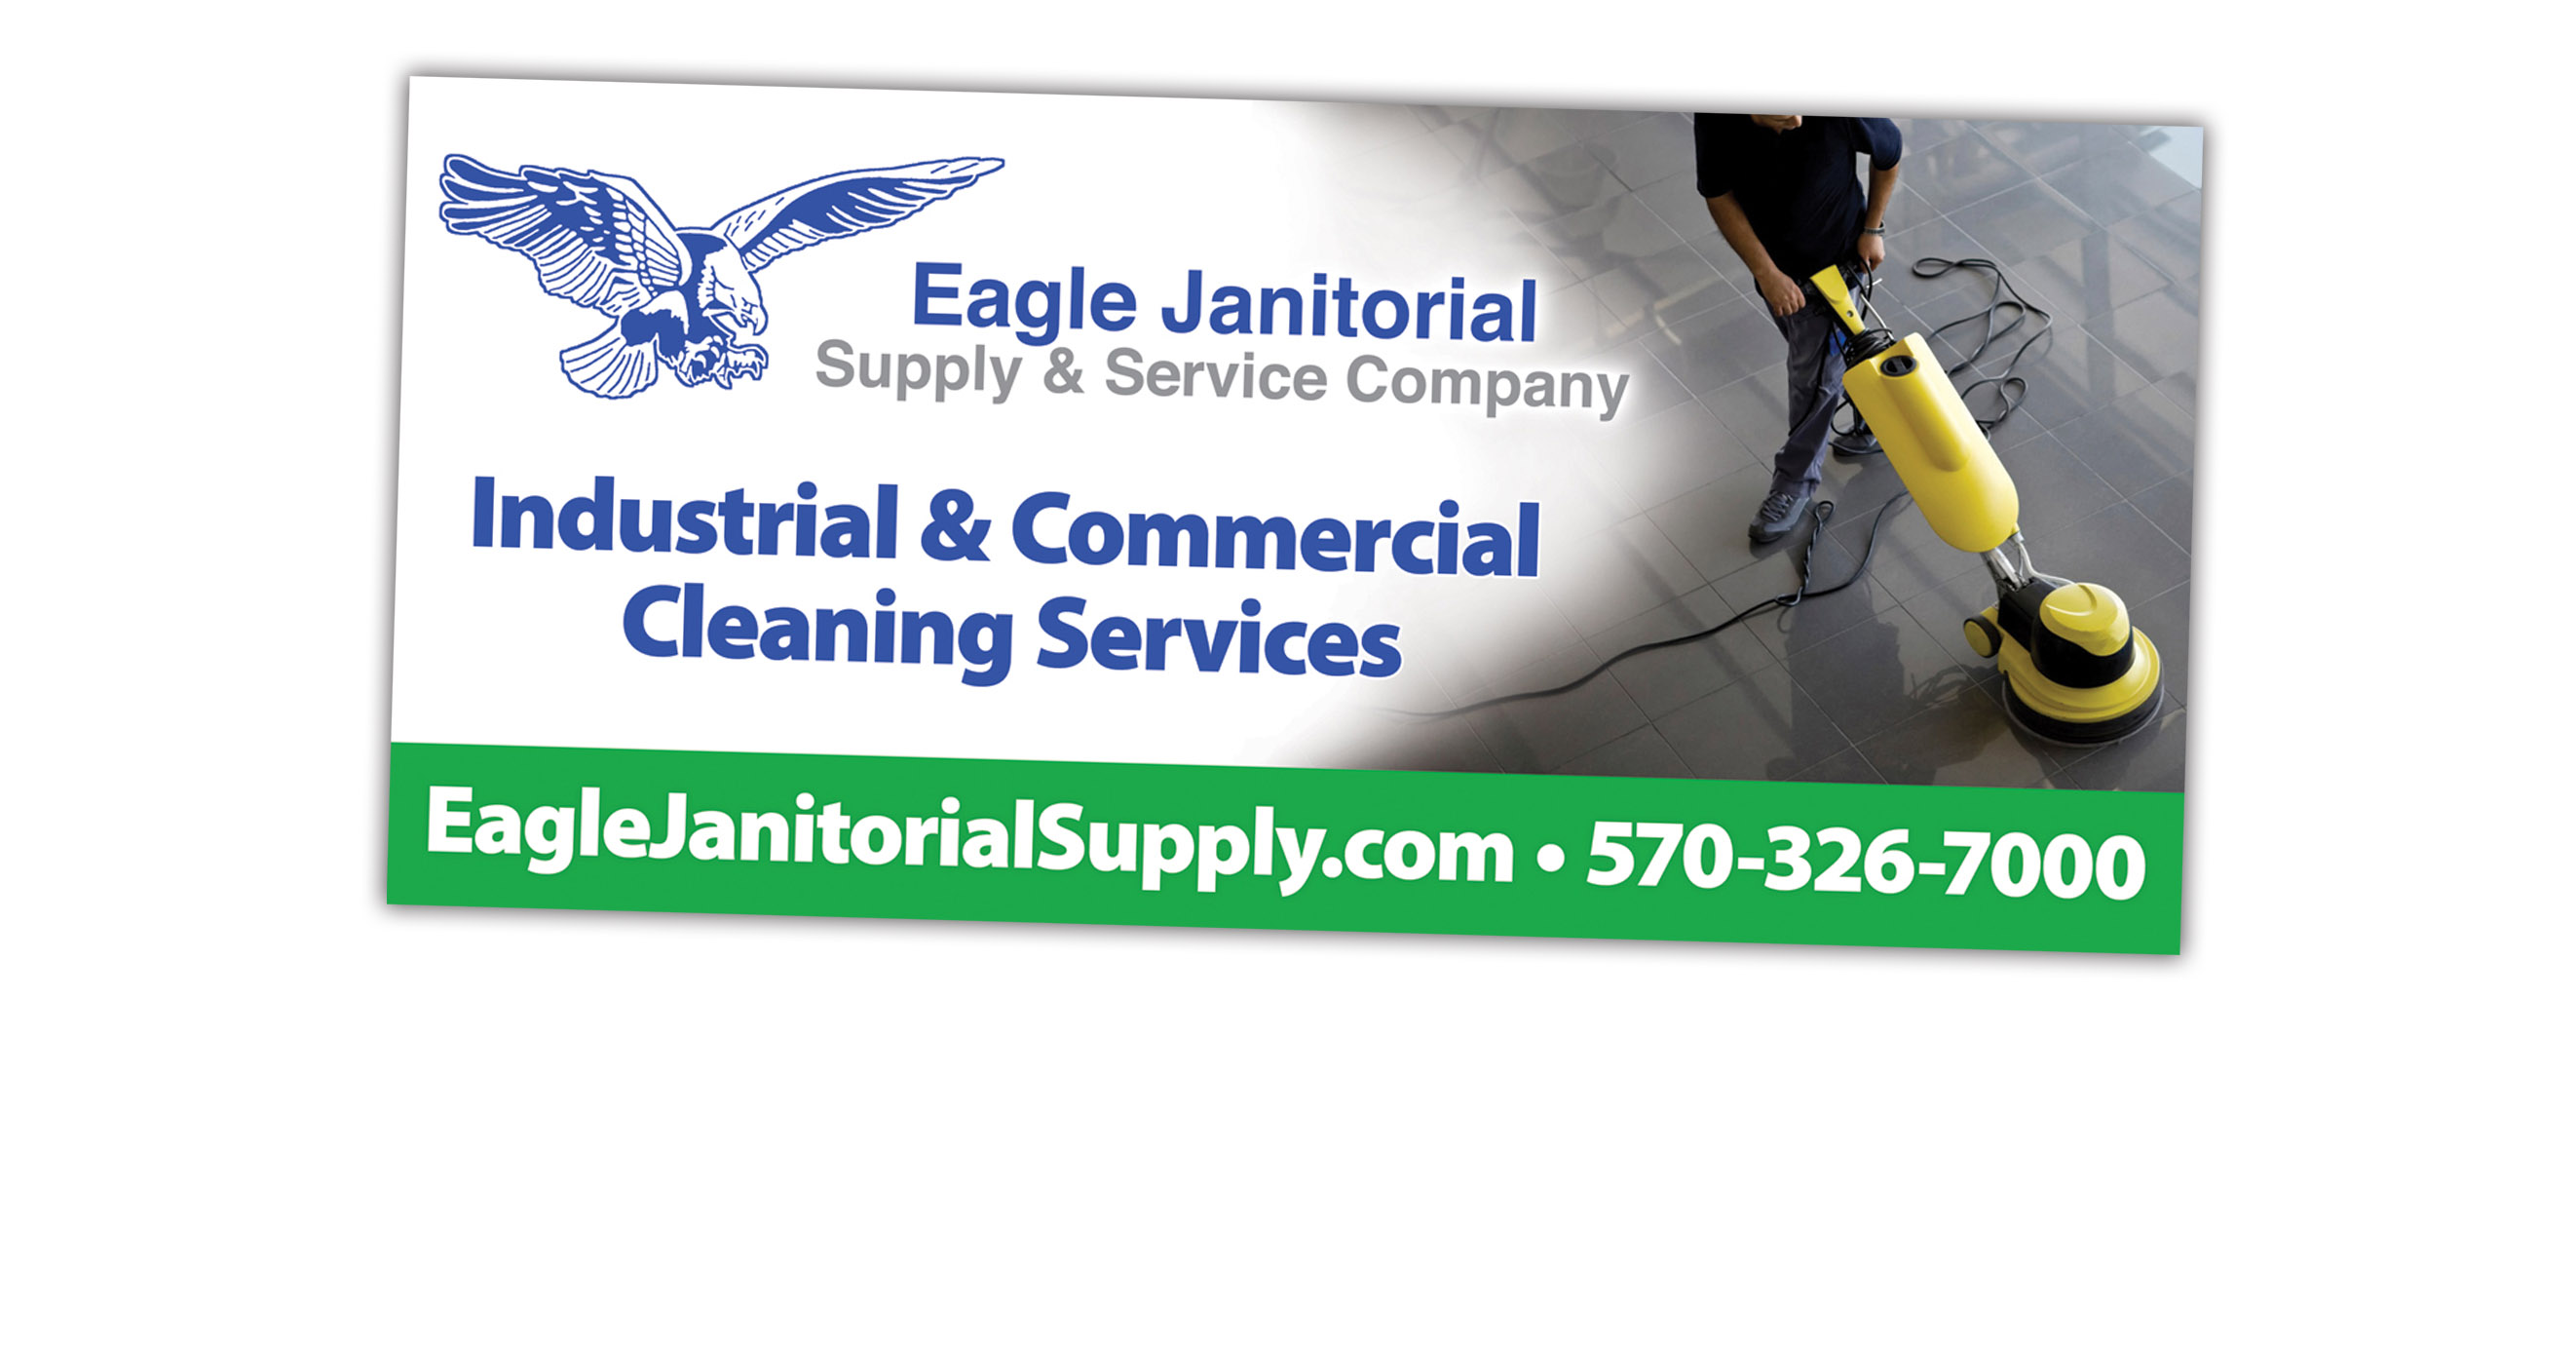 Eagle Janitorial Billboard